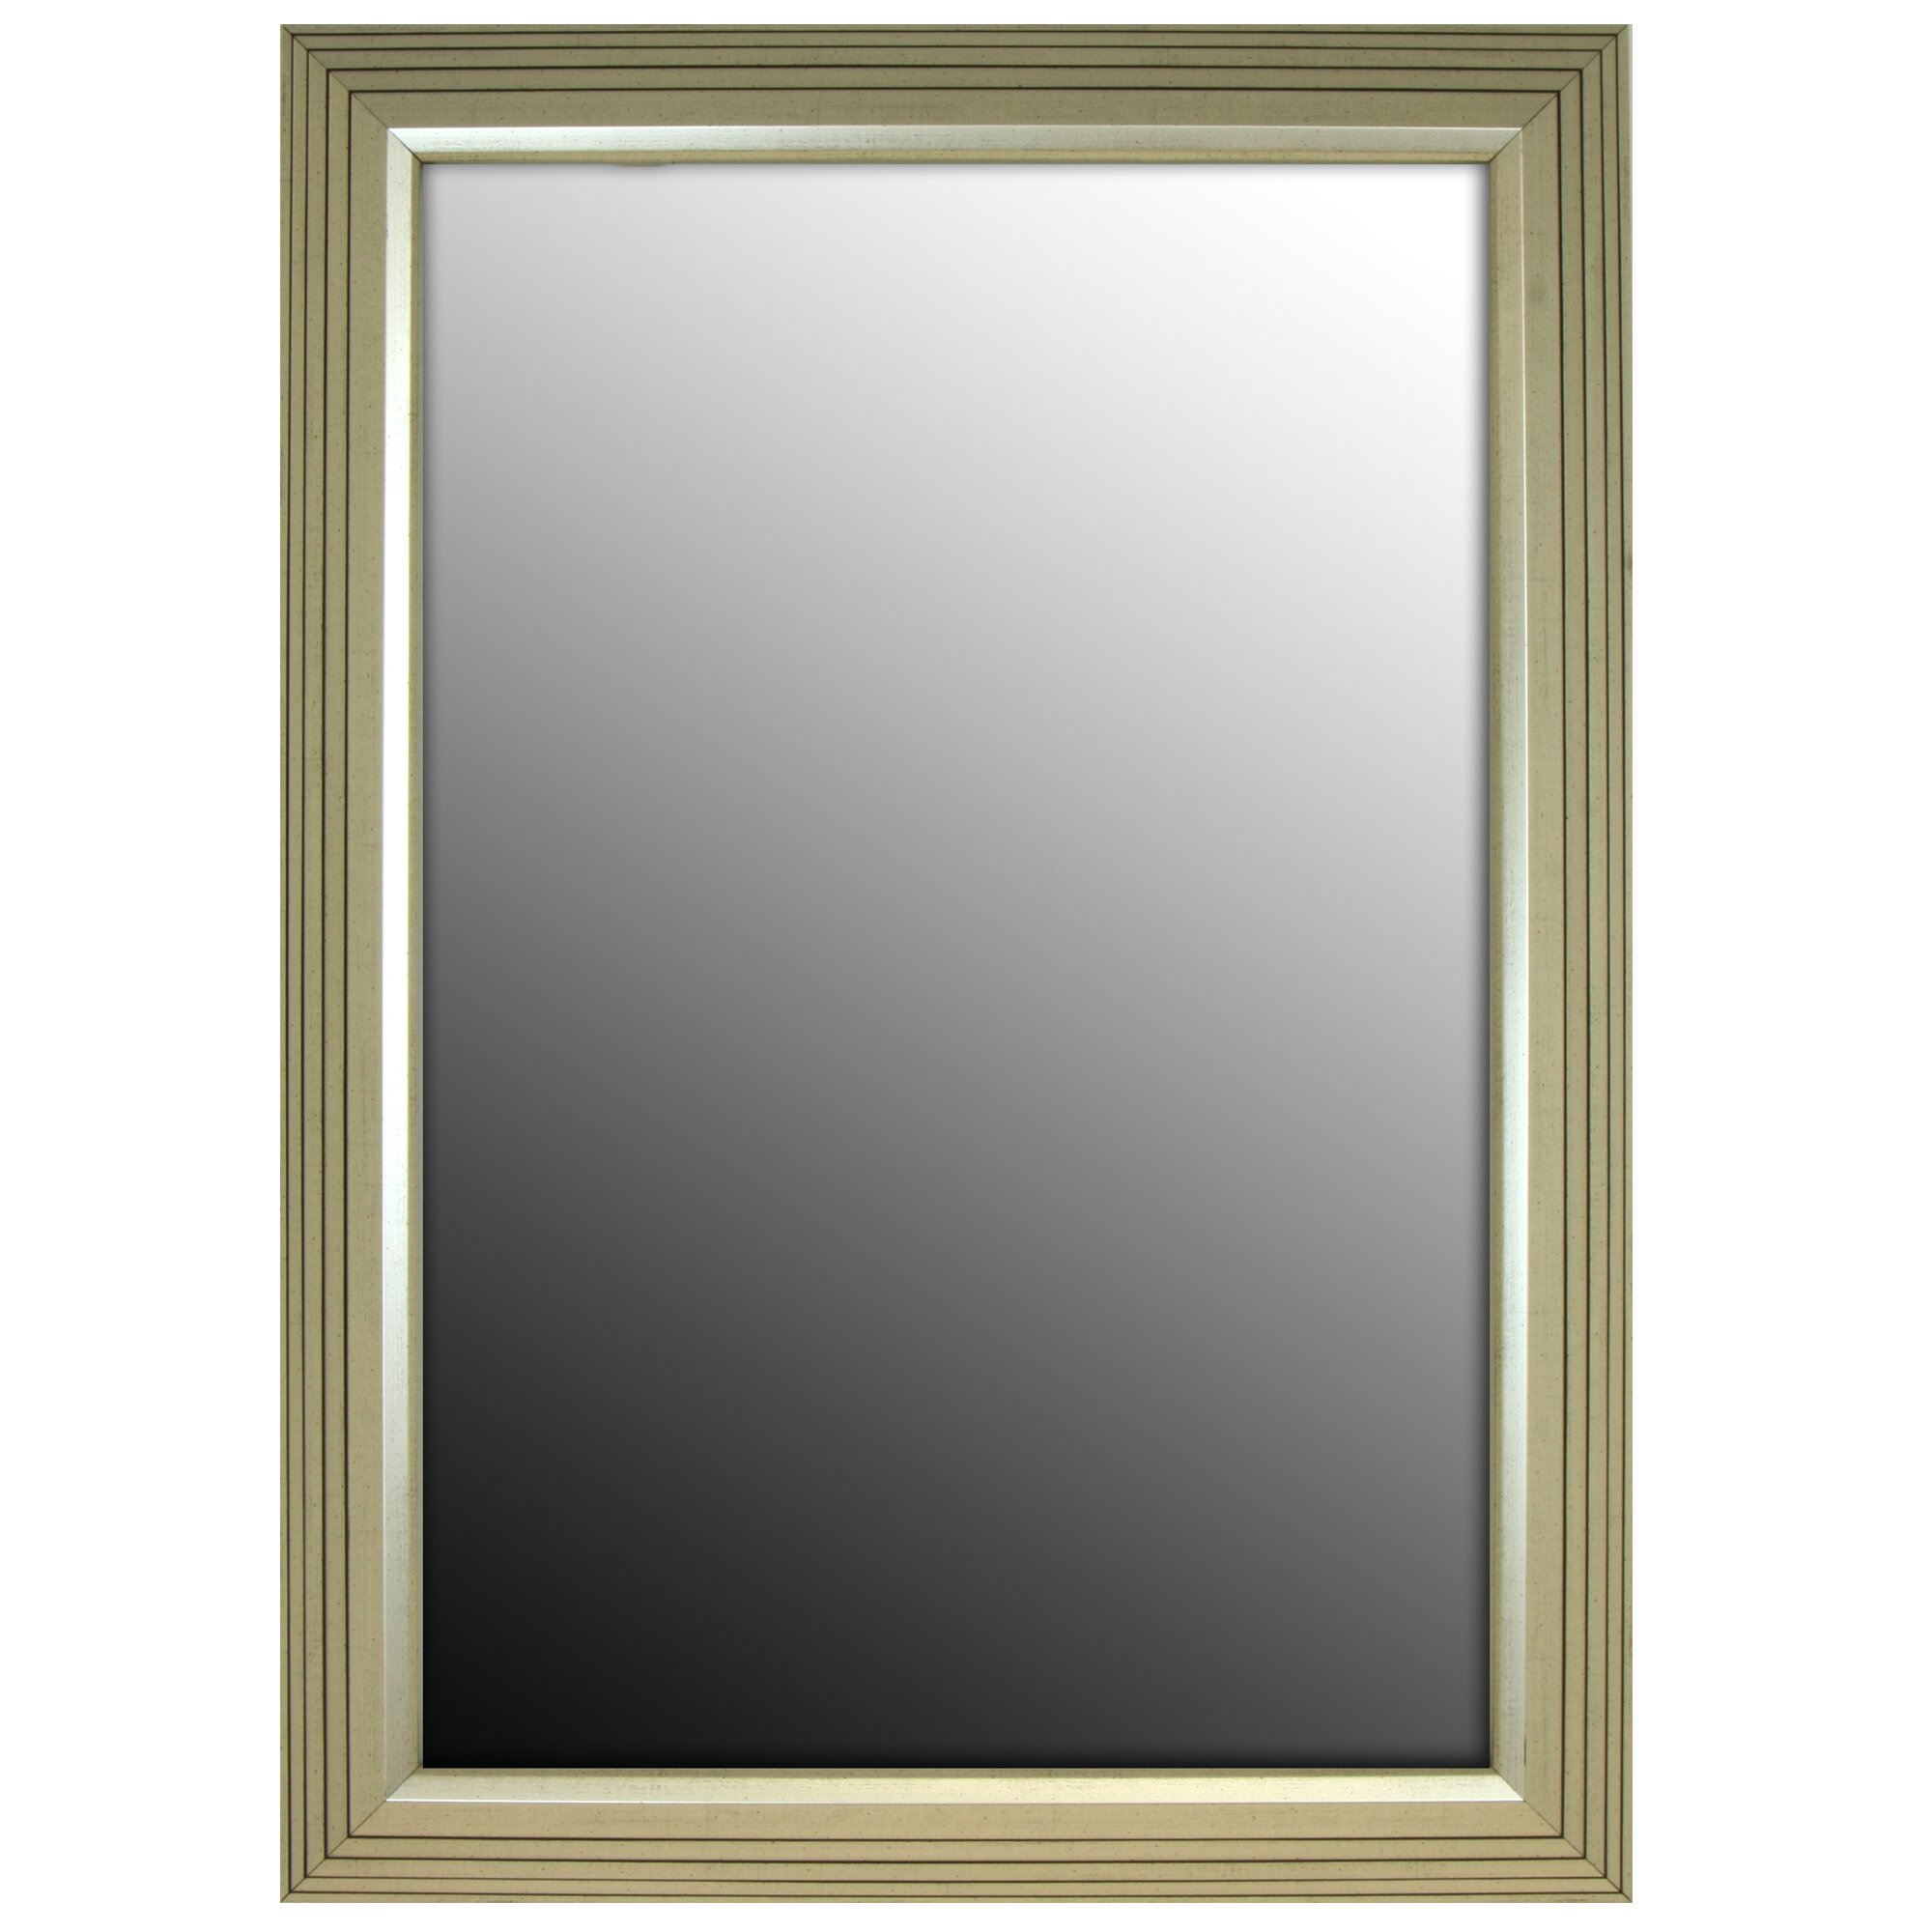 Second look mirrors stepped vintage silver petite wall for Looking for wall mirrors